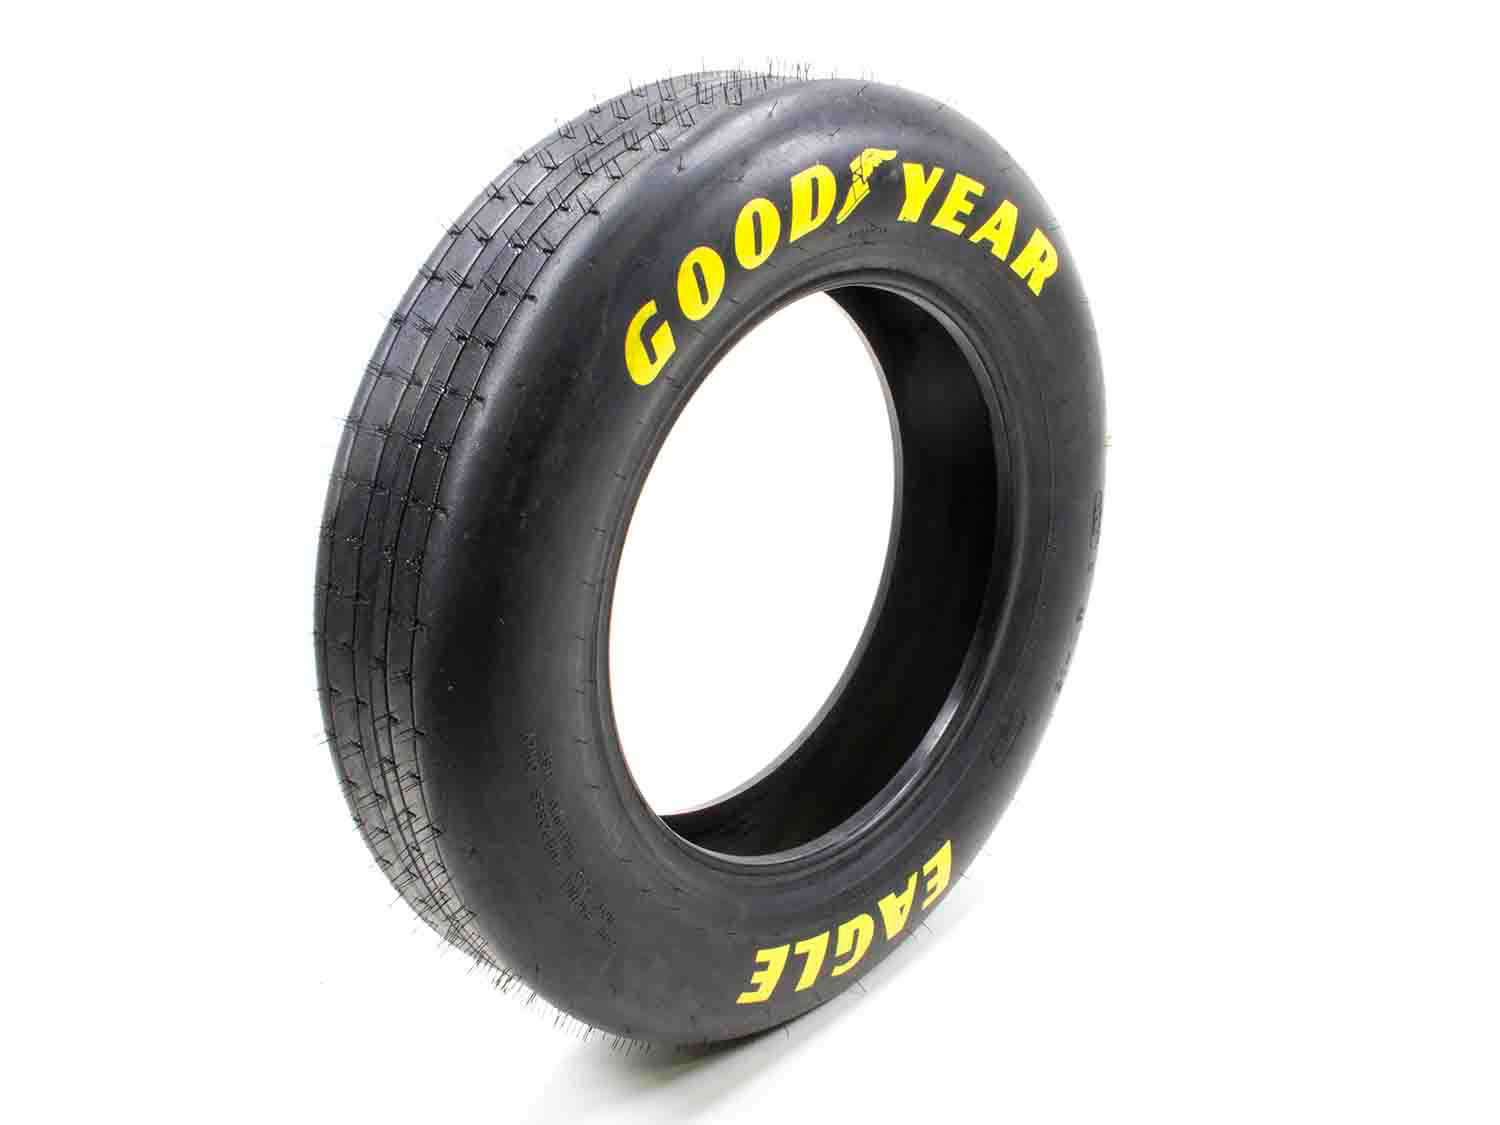 Goodyear D1961 Tire, Drag Front, Front Runner, 23.0 x 5.0-15, Bias Ply, Hard Compound, Yellow Letter Sidewall, Each